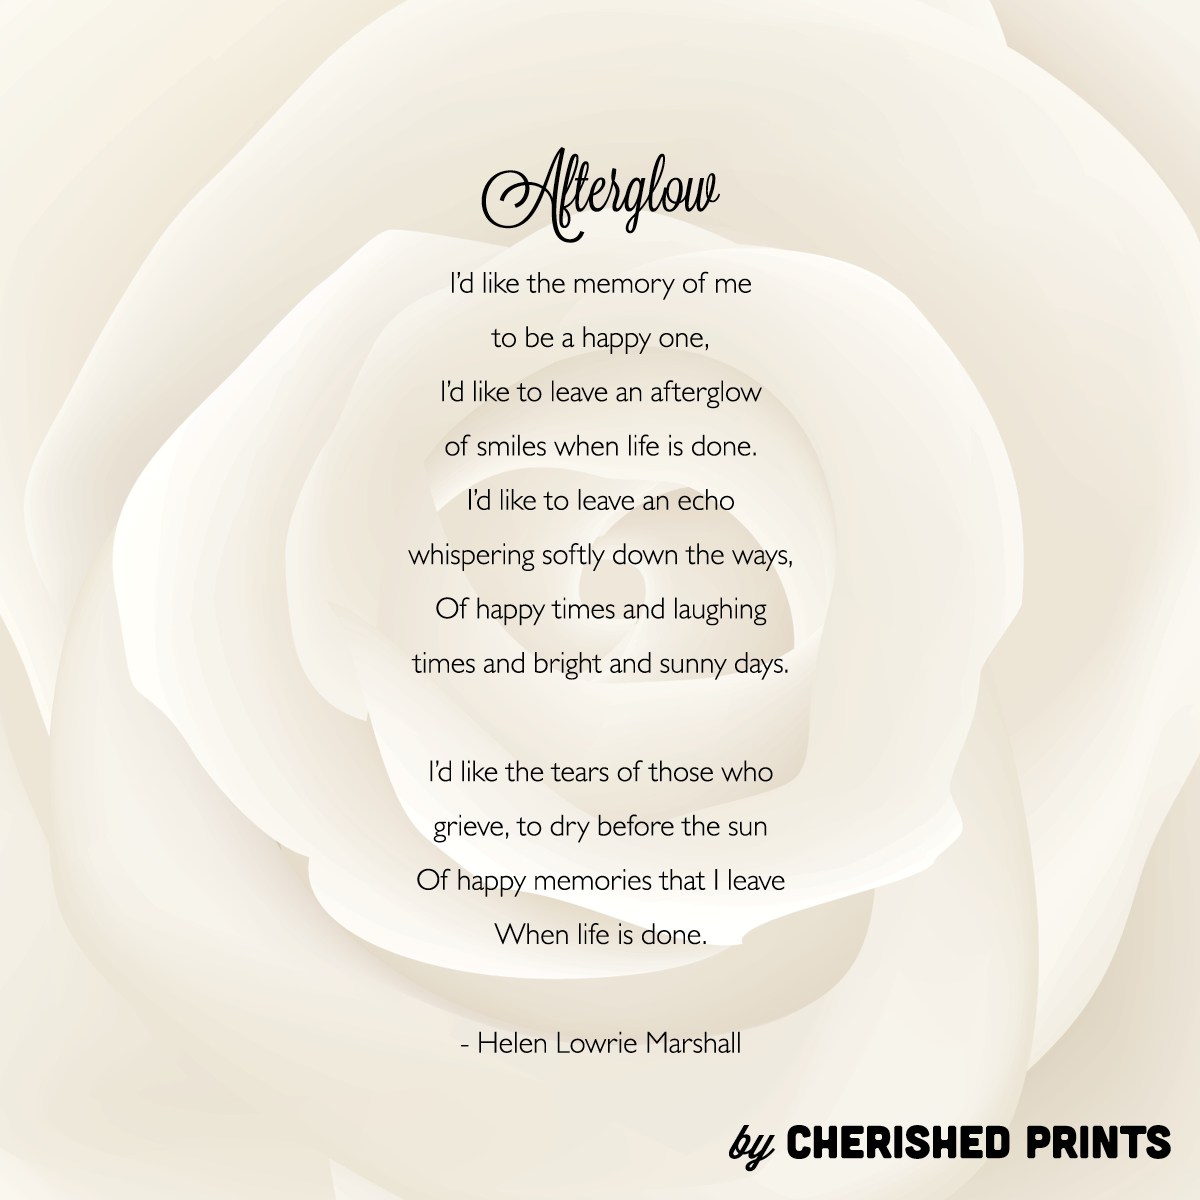 Cherished prints funeral and memorial stationery afterglow